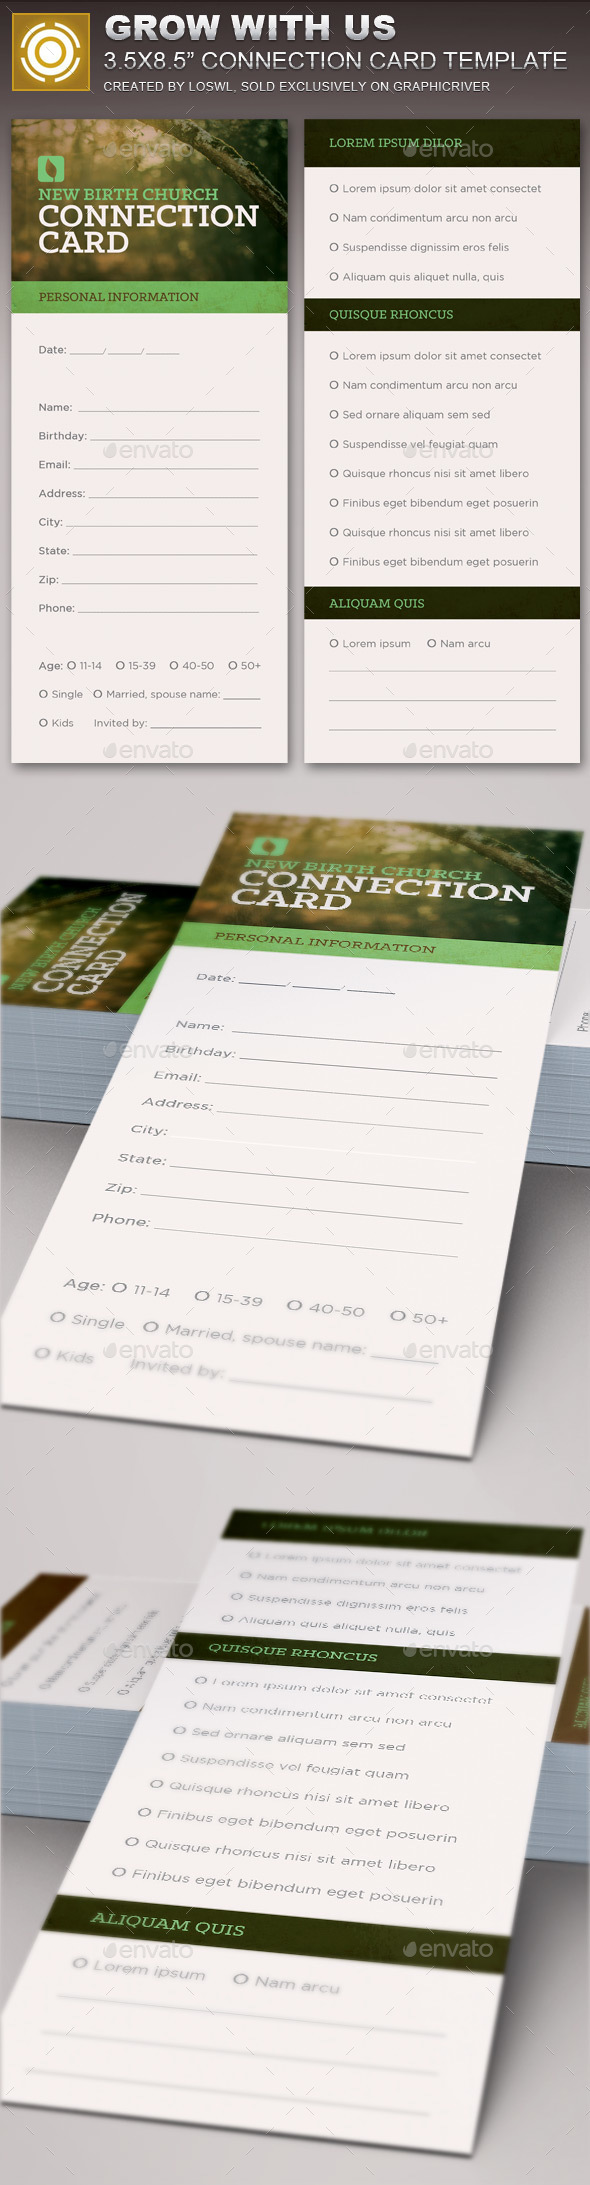 Stationery and Design Templates with Print Dimensions: 3.5x8.5